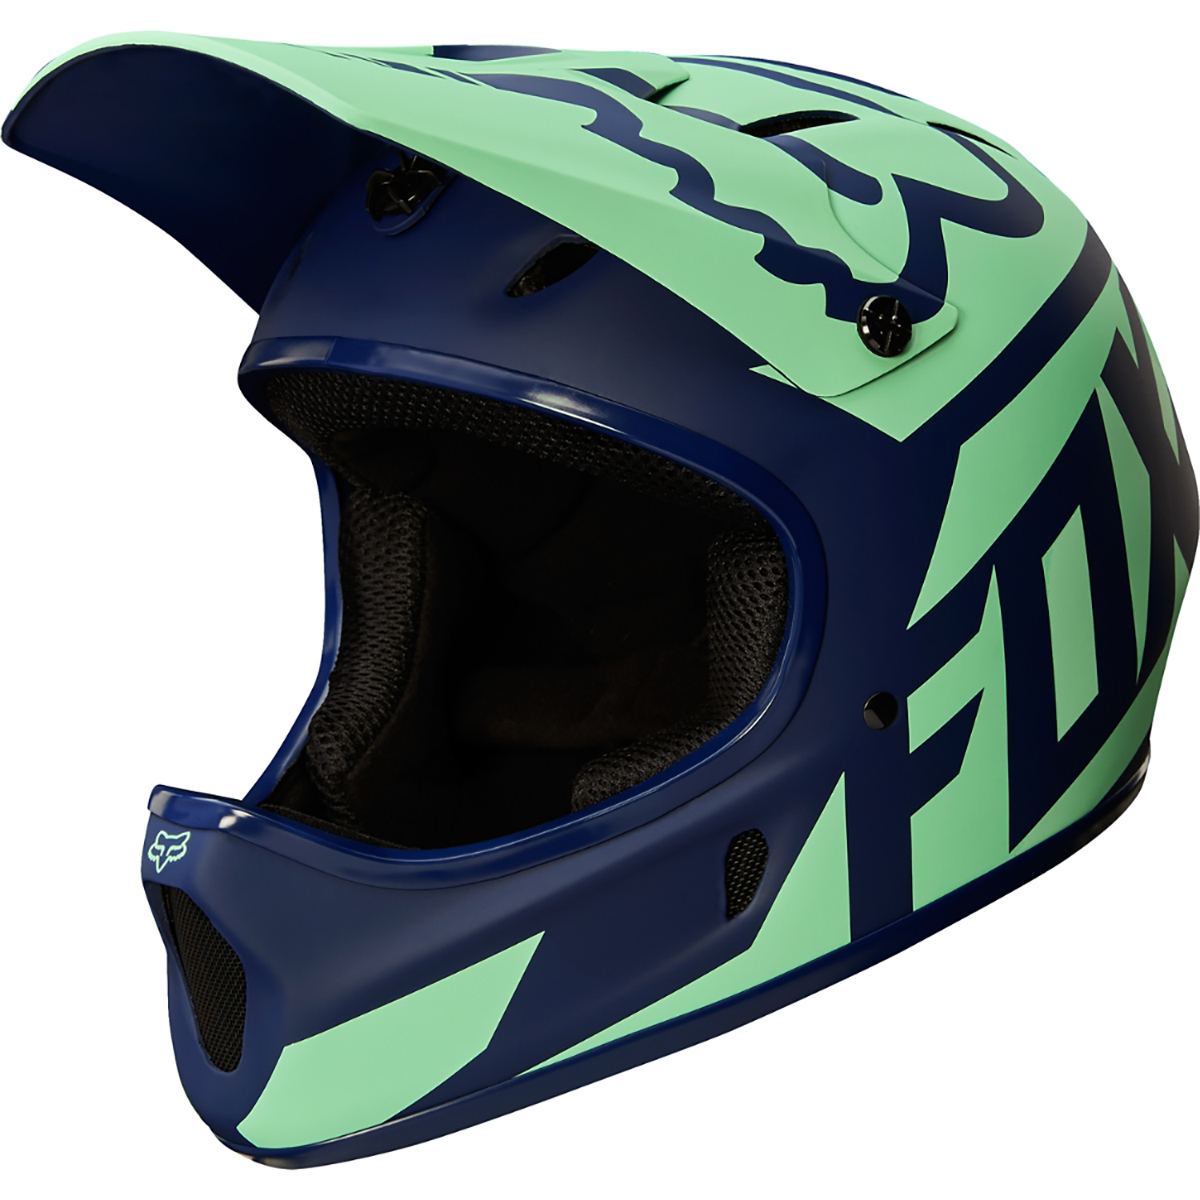 From tearing up the park to bombing downhill, the Rampage Race Full Face Helmet is ready for it all. Made with a lightweight fiberglass shell, for great protection without any unnecessary weight. Easy to remove and washable liner keep the helmet fresh for seasons to come. This helmet will give you the confidence boost you need to master the mountain and fly like a champ.Removable, washable linerFiberglass shellRiding Style: Downhill, MTBGender: UnisexSize: Large (59-60 cm)Color: Navy/Light BlueWeight: 585g (L)New - $129.95